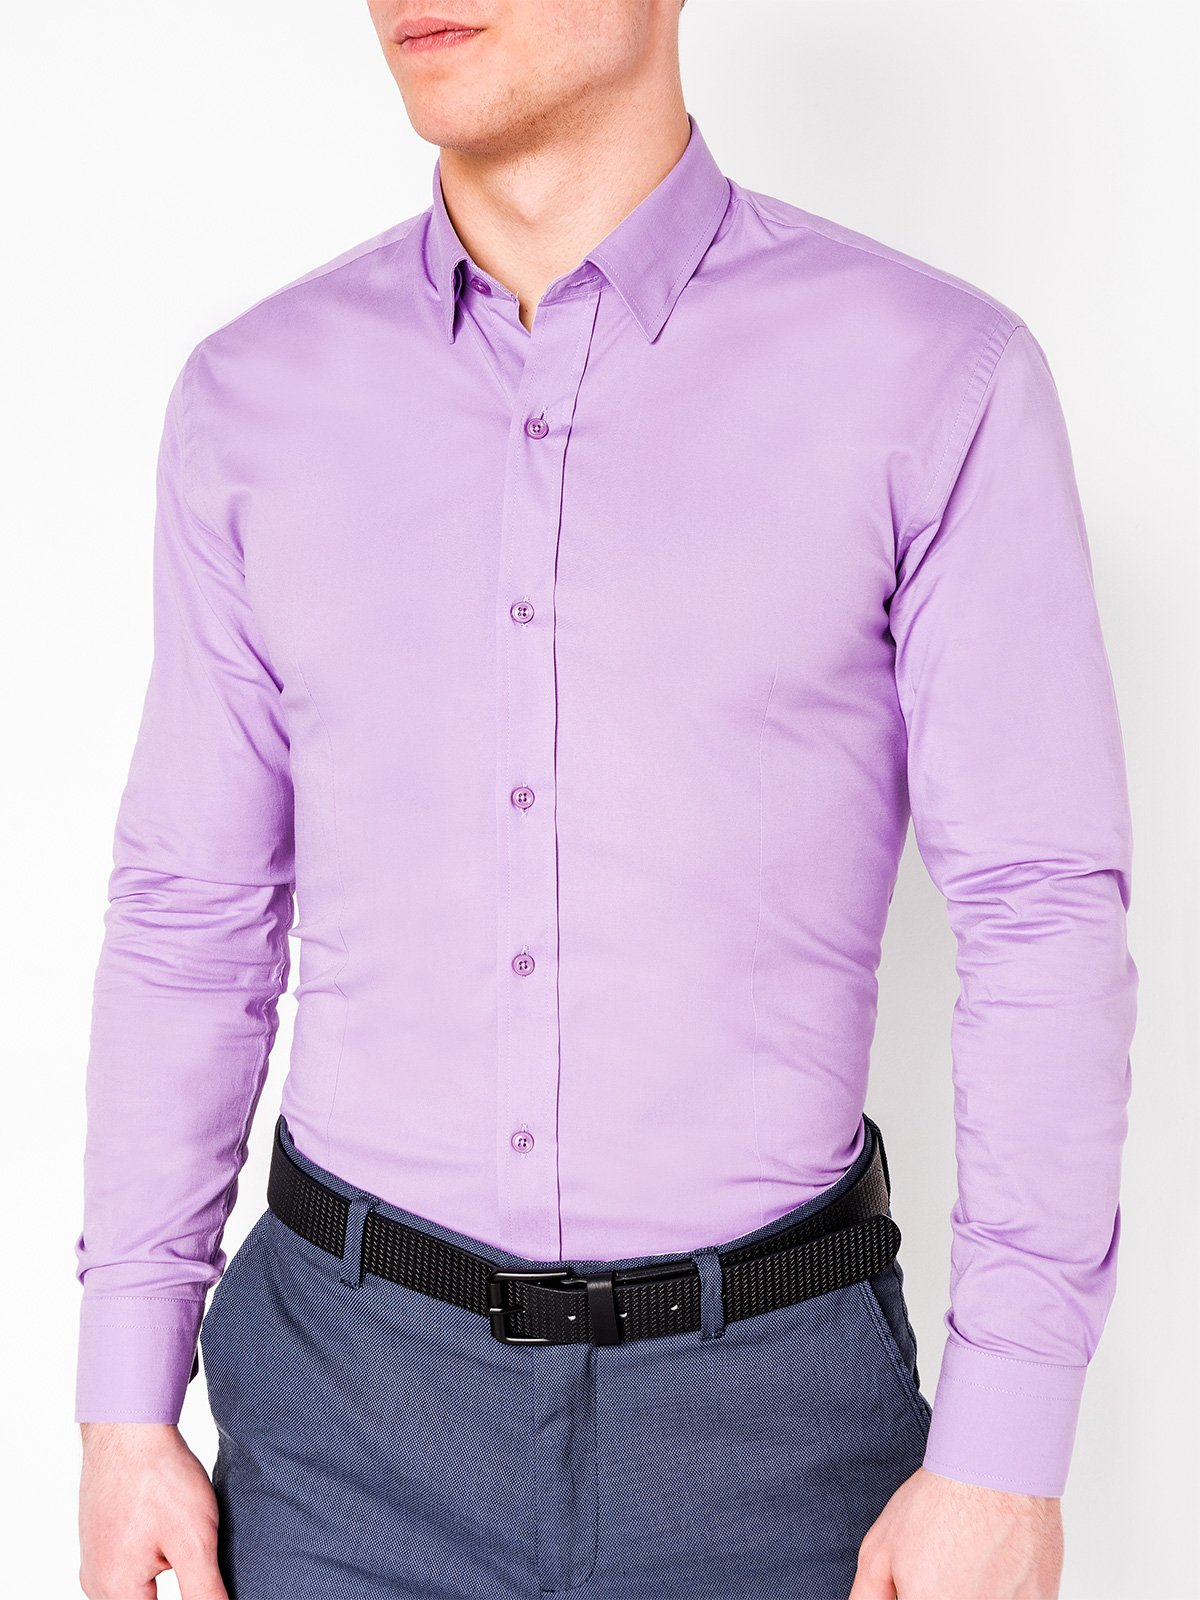 Ombre Clothing Men's elegant shirt with long sleeves K219